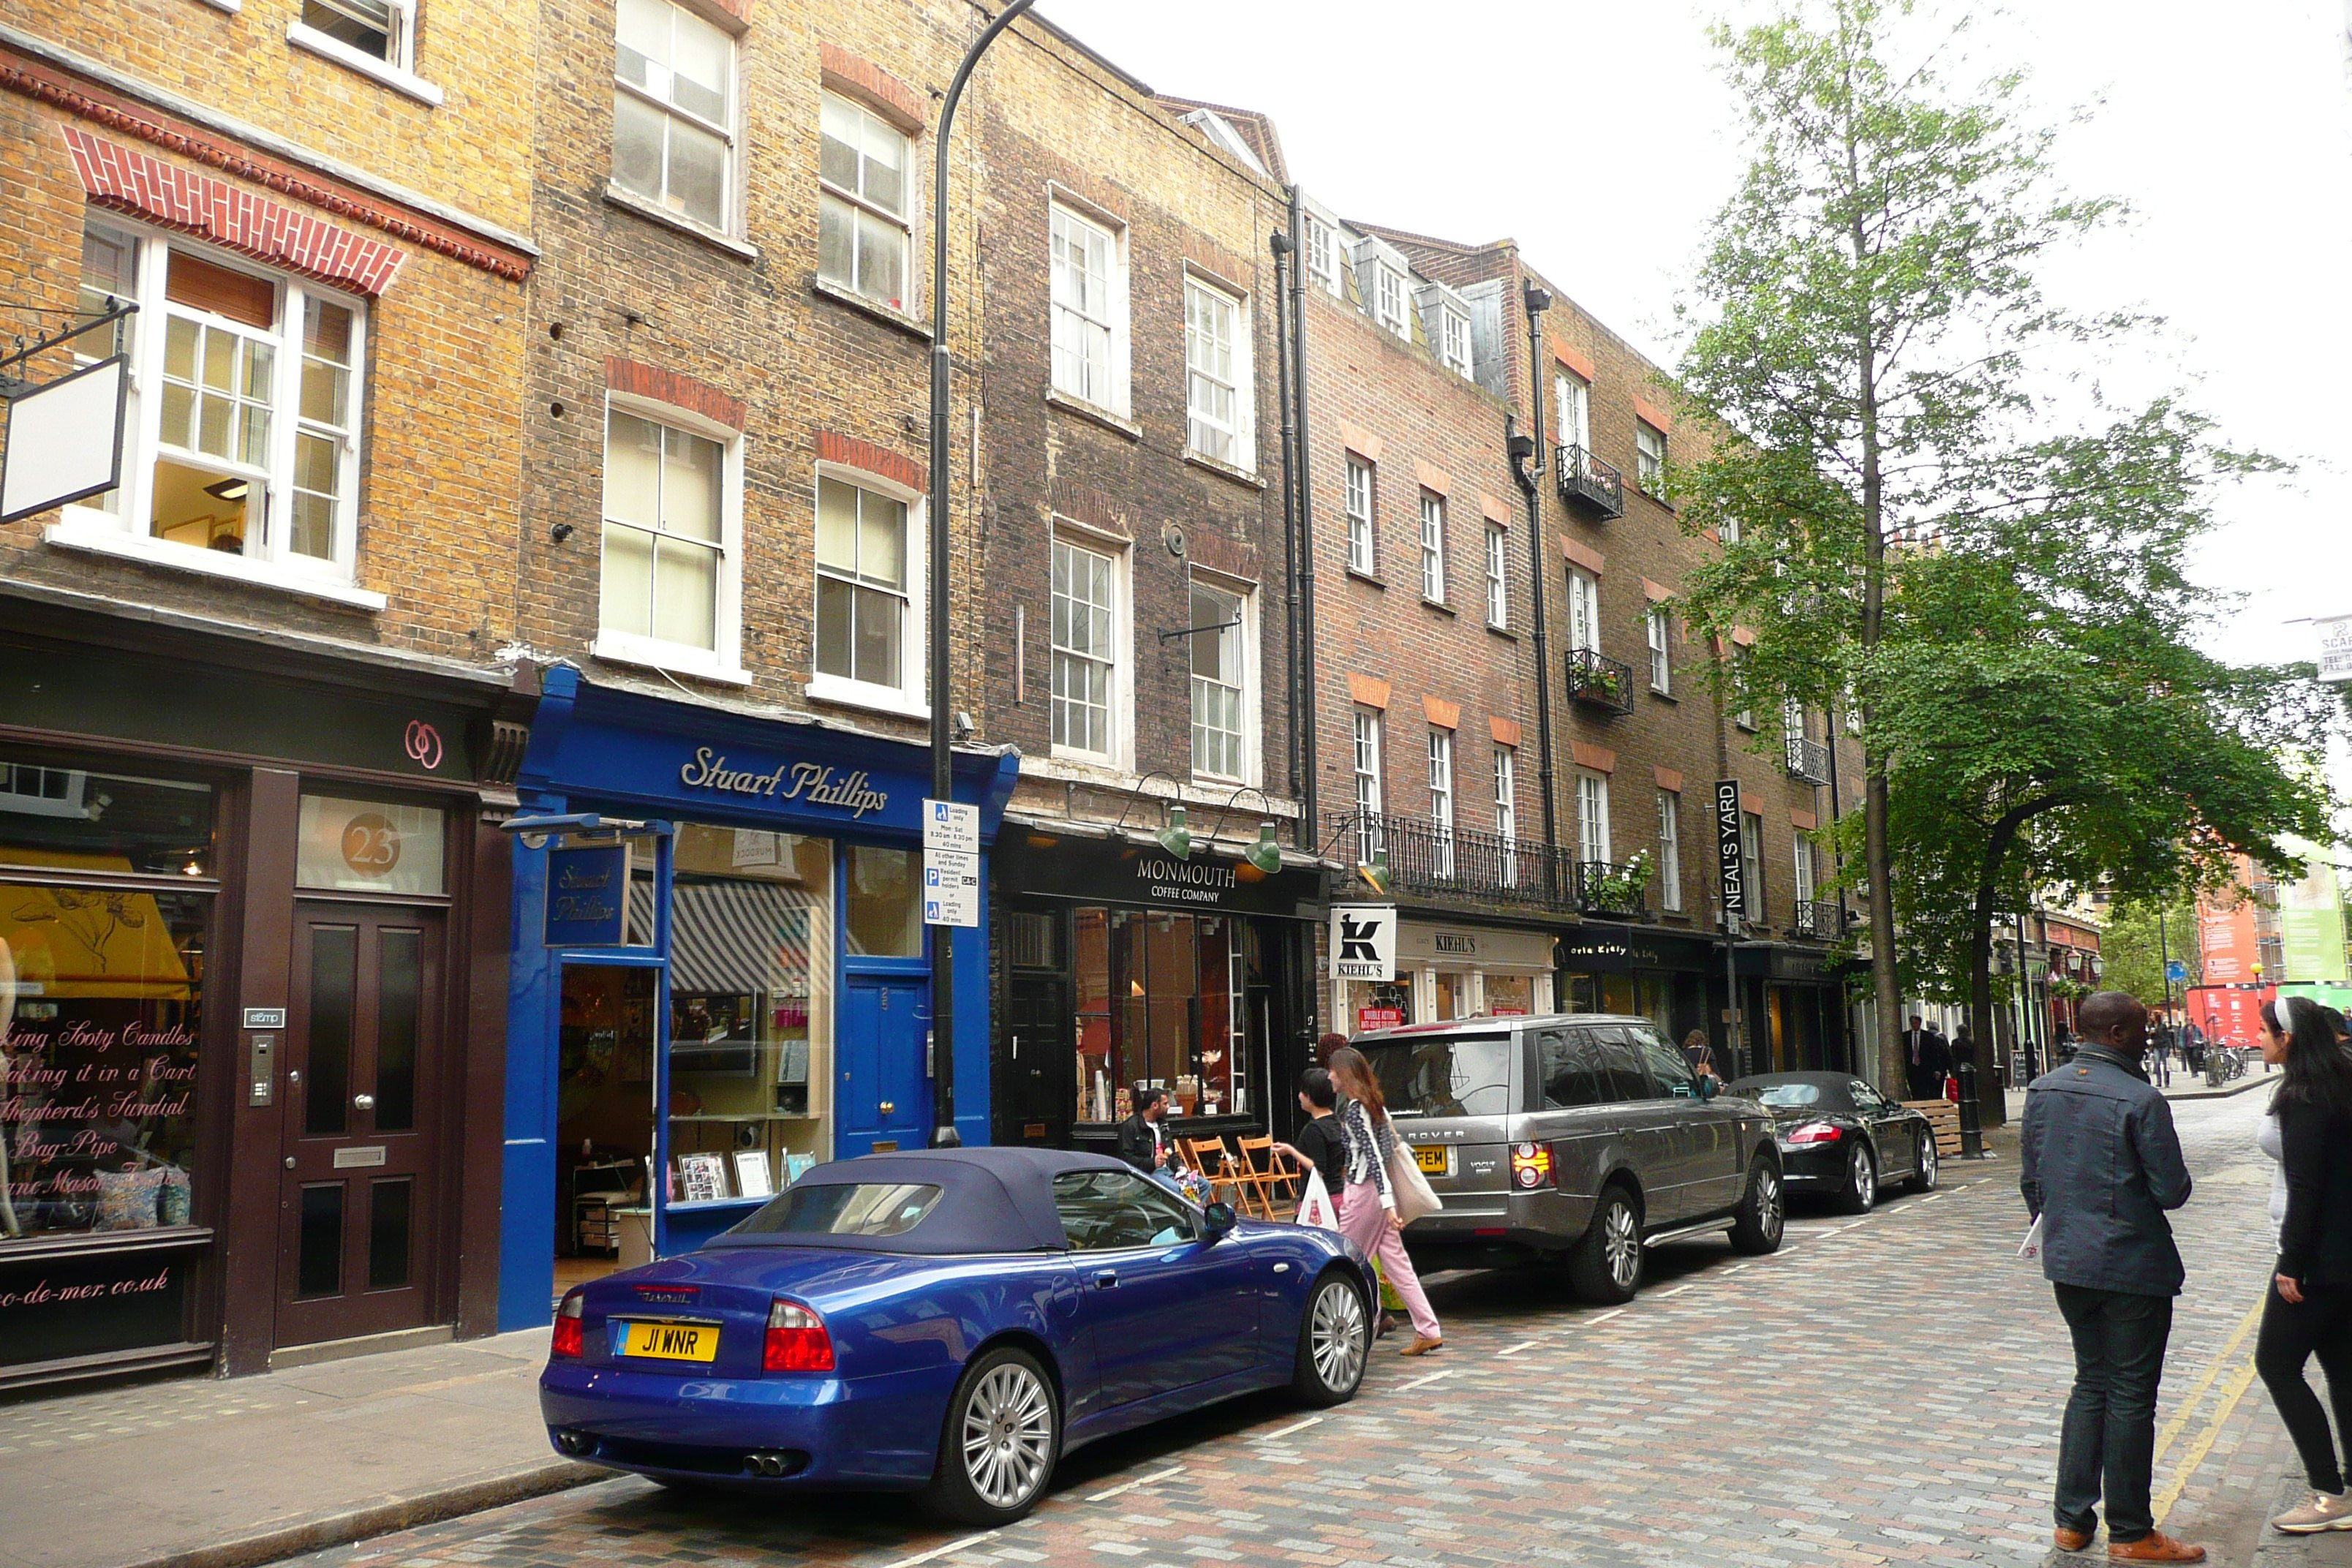 Monmouth Street north shopfronts restored by Marler Estates and Shaftesbury PLC.